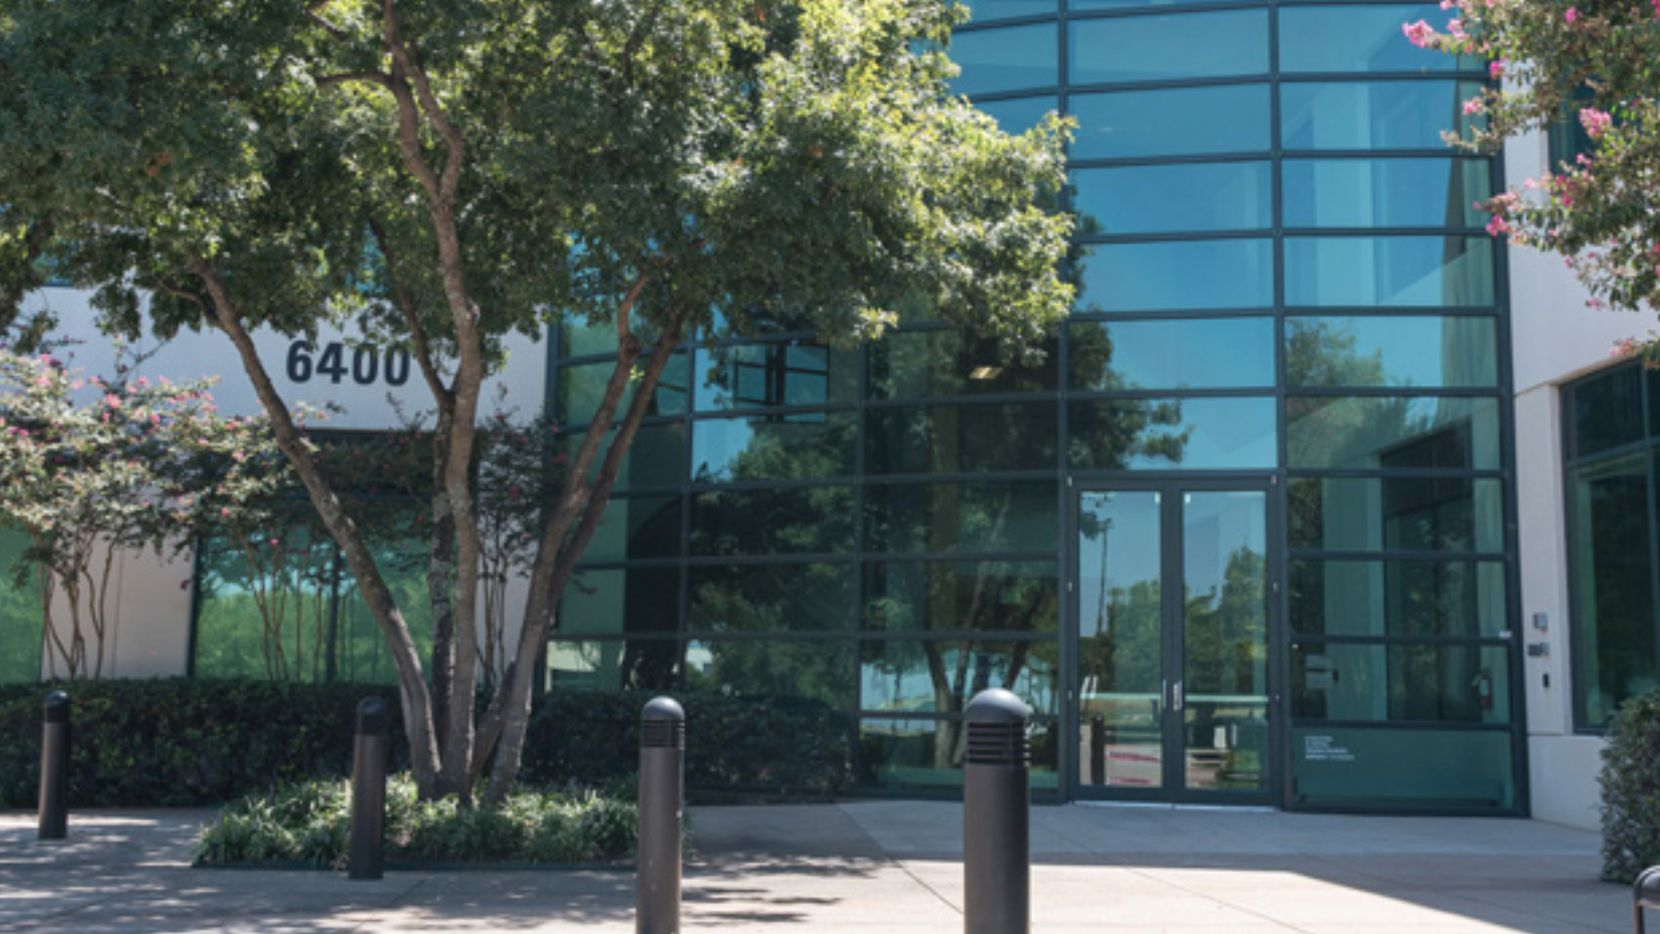 SML-RFID is more than doubling its office in Plano's International Business Park.